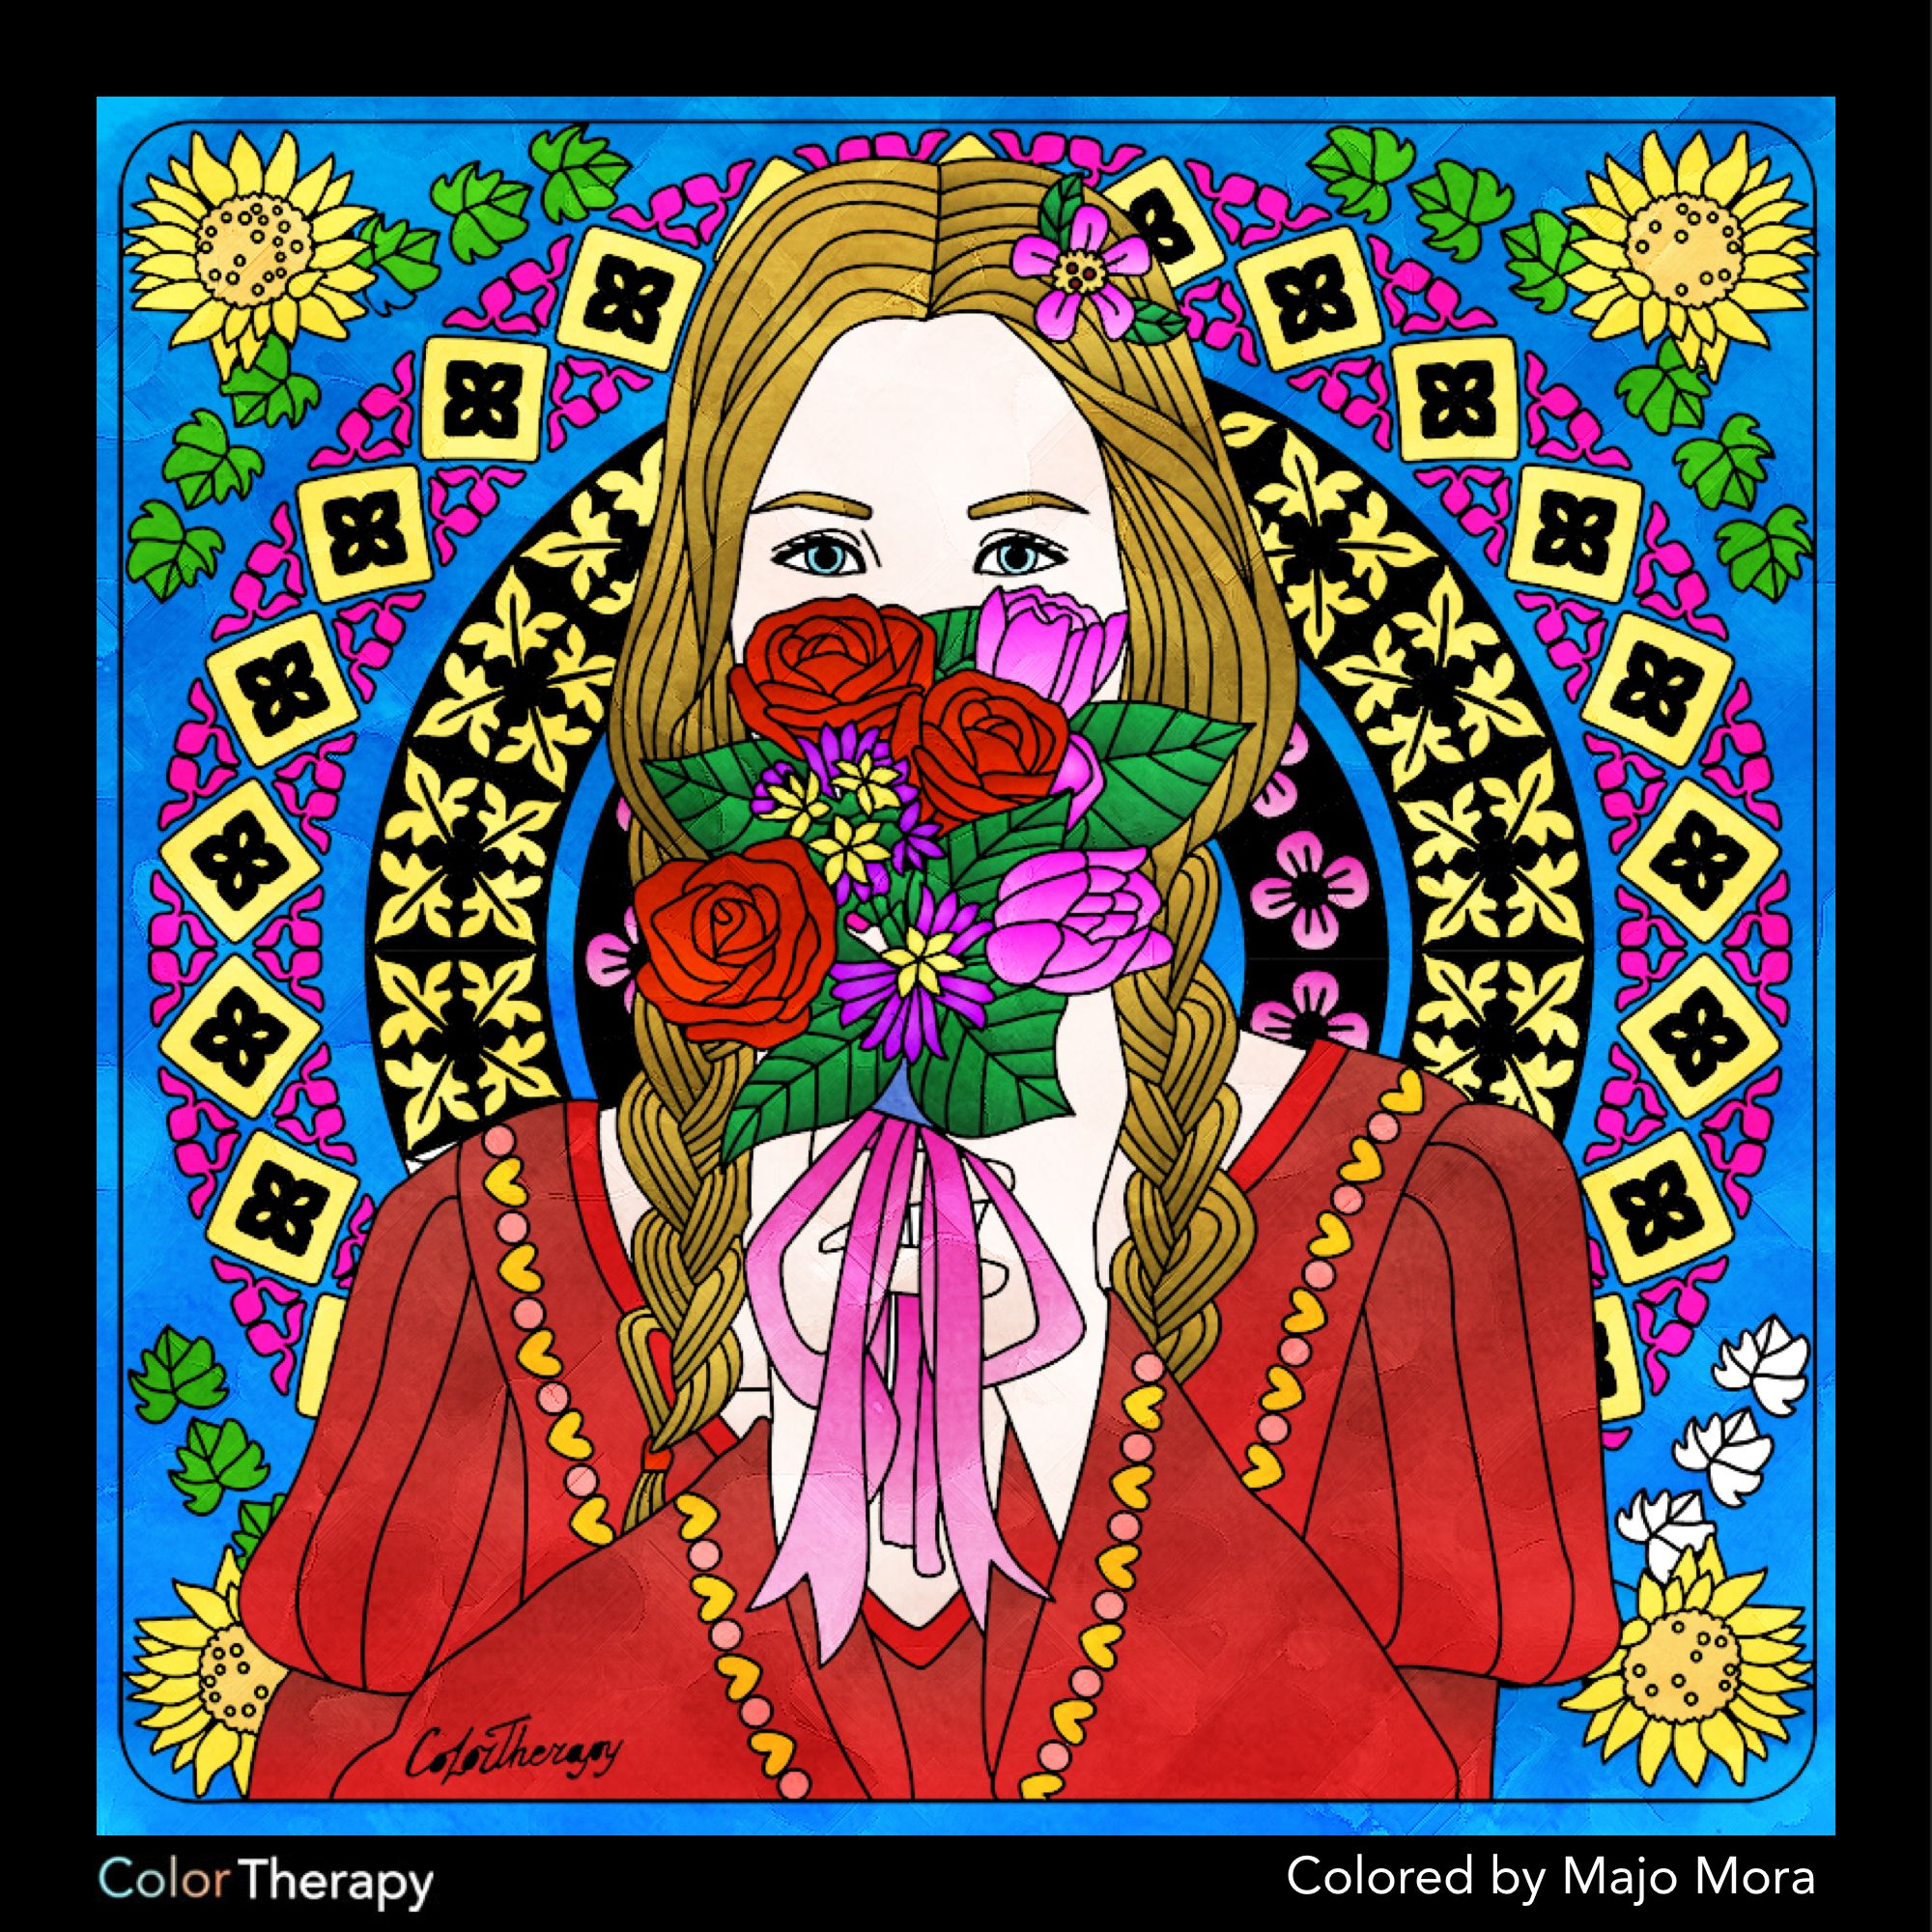 Color therapy anti stress coloring book app - I Colored This Myself Using Color Therapy App Coloreando Coloring